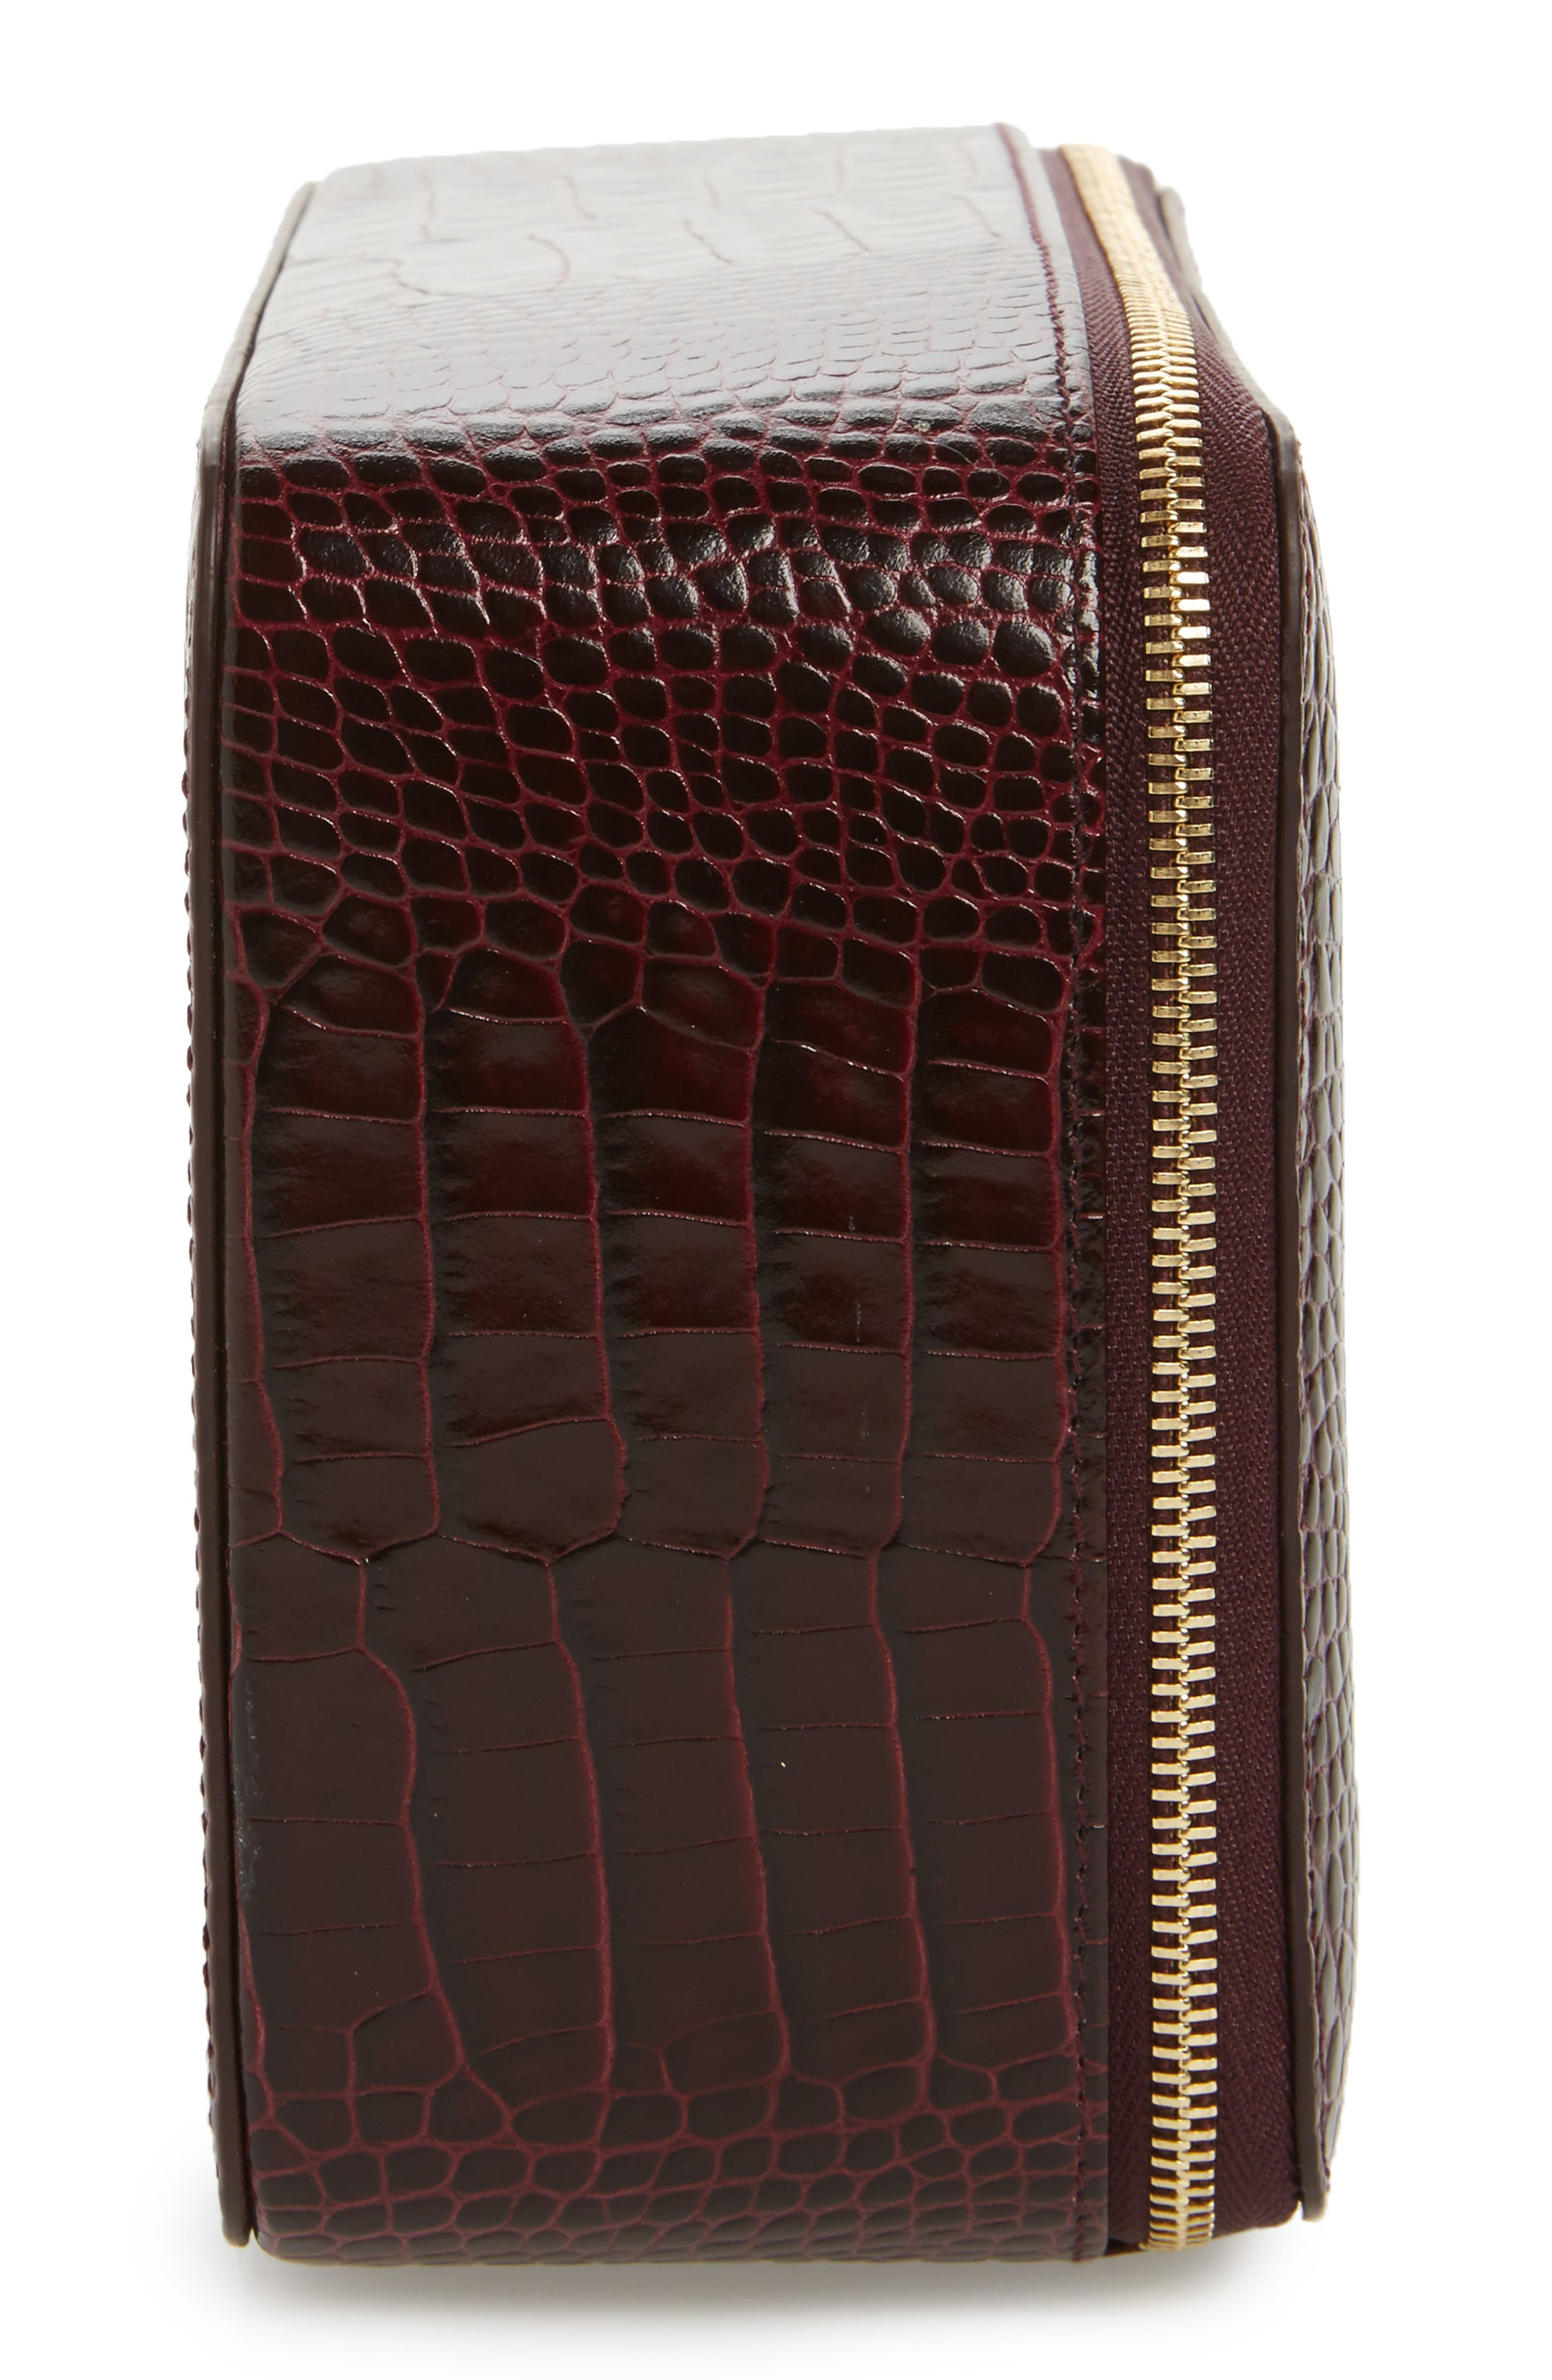 Mara Square Croc Embossed Leather Travel Case,                             Alternate thumbnail 4, color,                             930